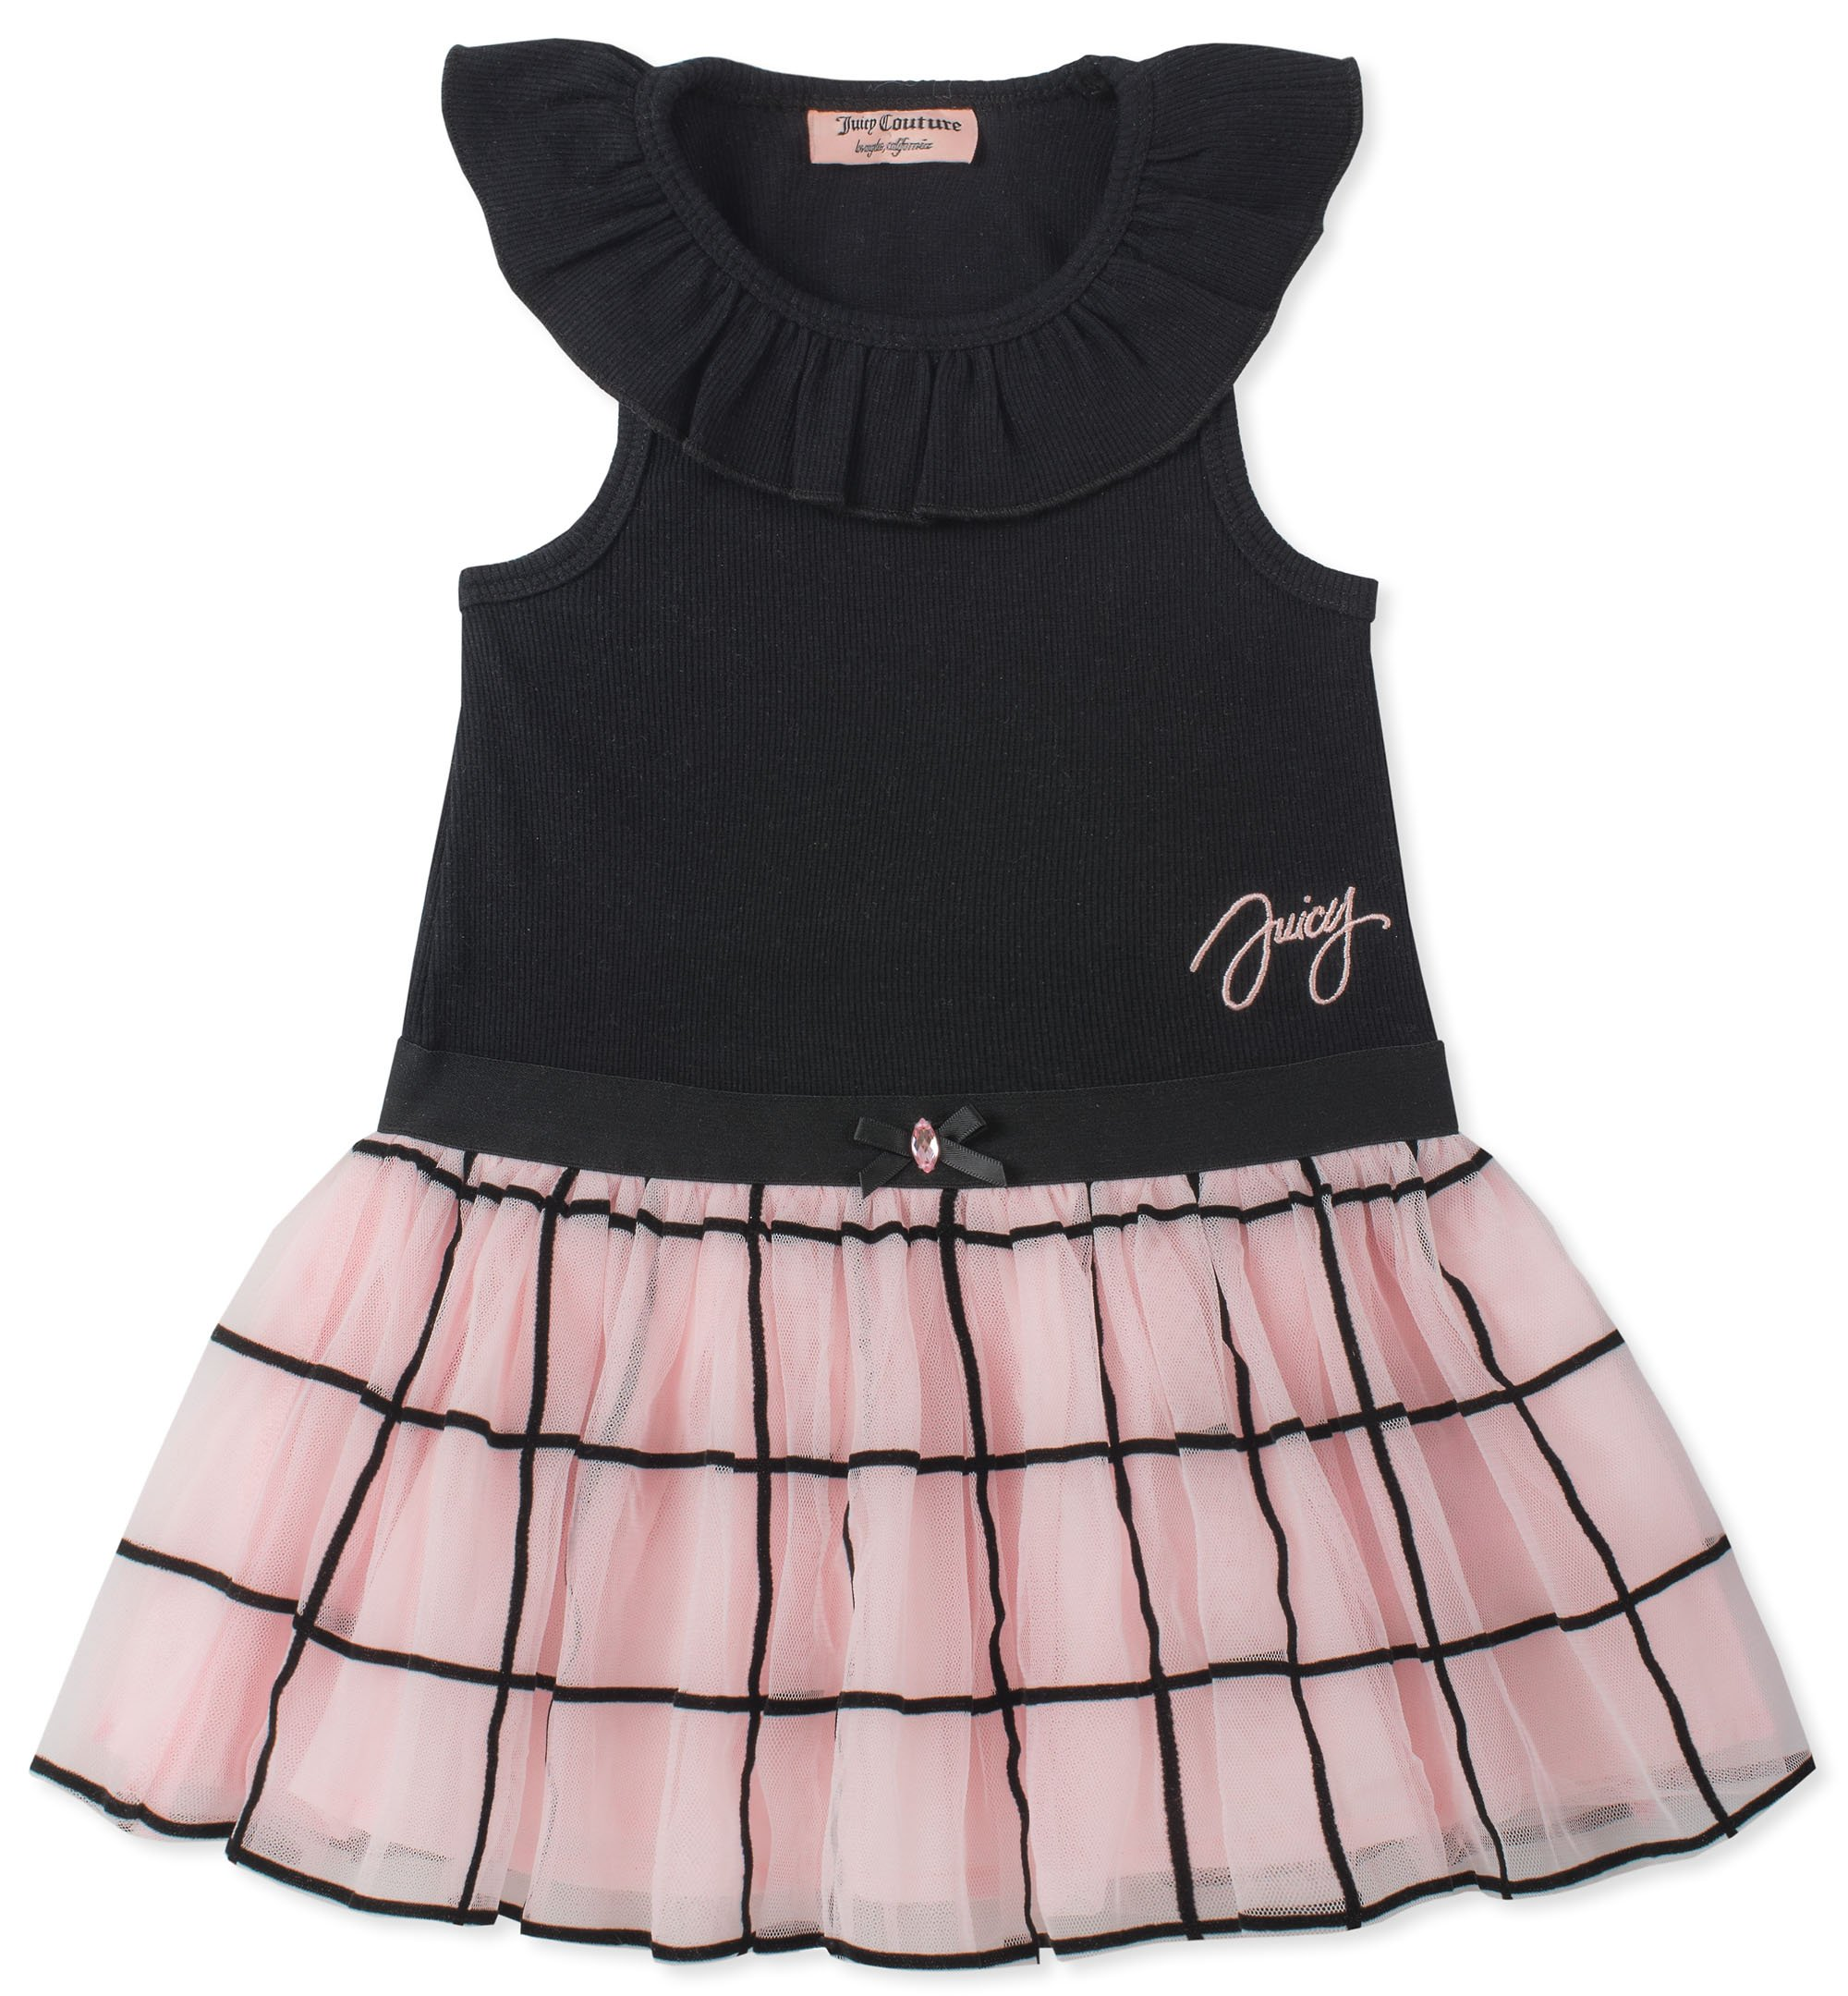 Juicy Couture Girls' Toddler Casual Dress, Black/Pink, 4T